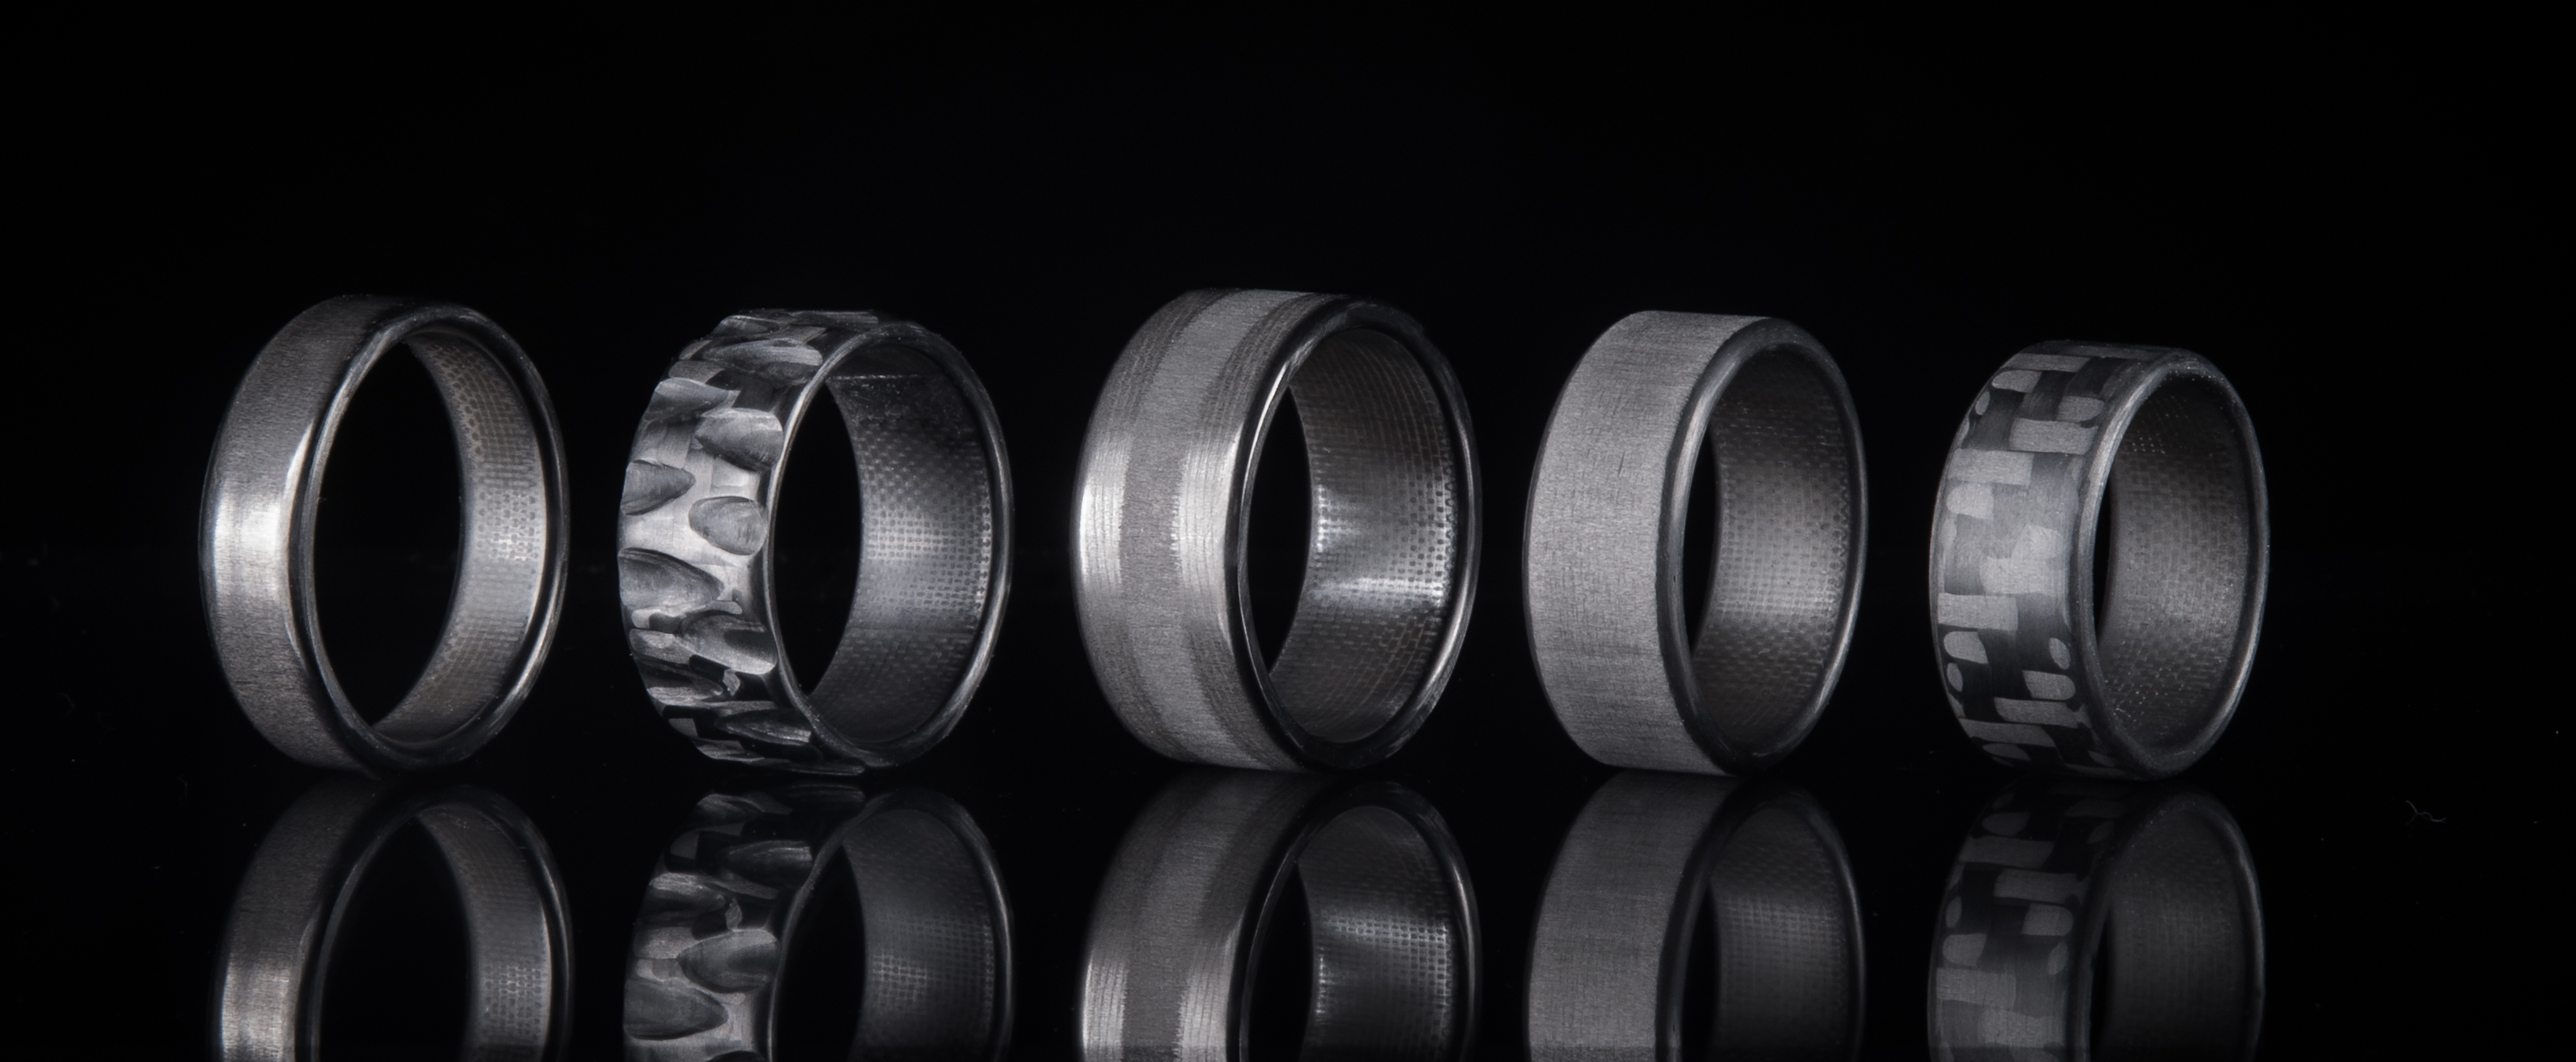 100 carbon fiber rings - Carbon Fiber Wedding Rings